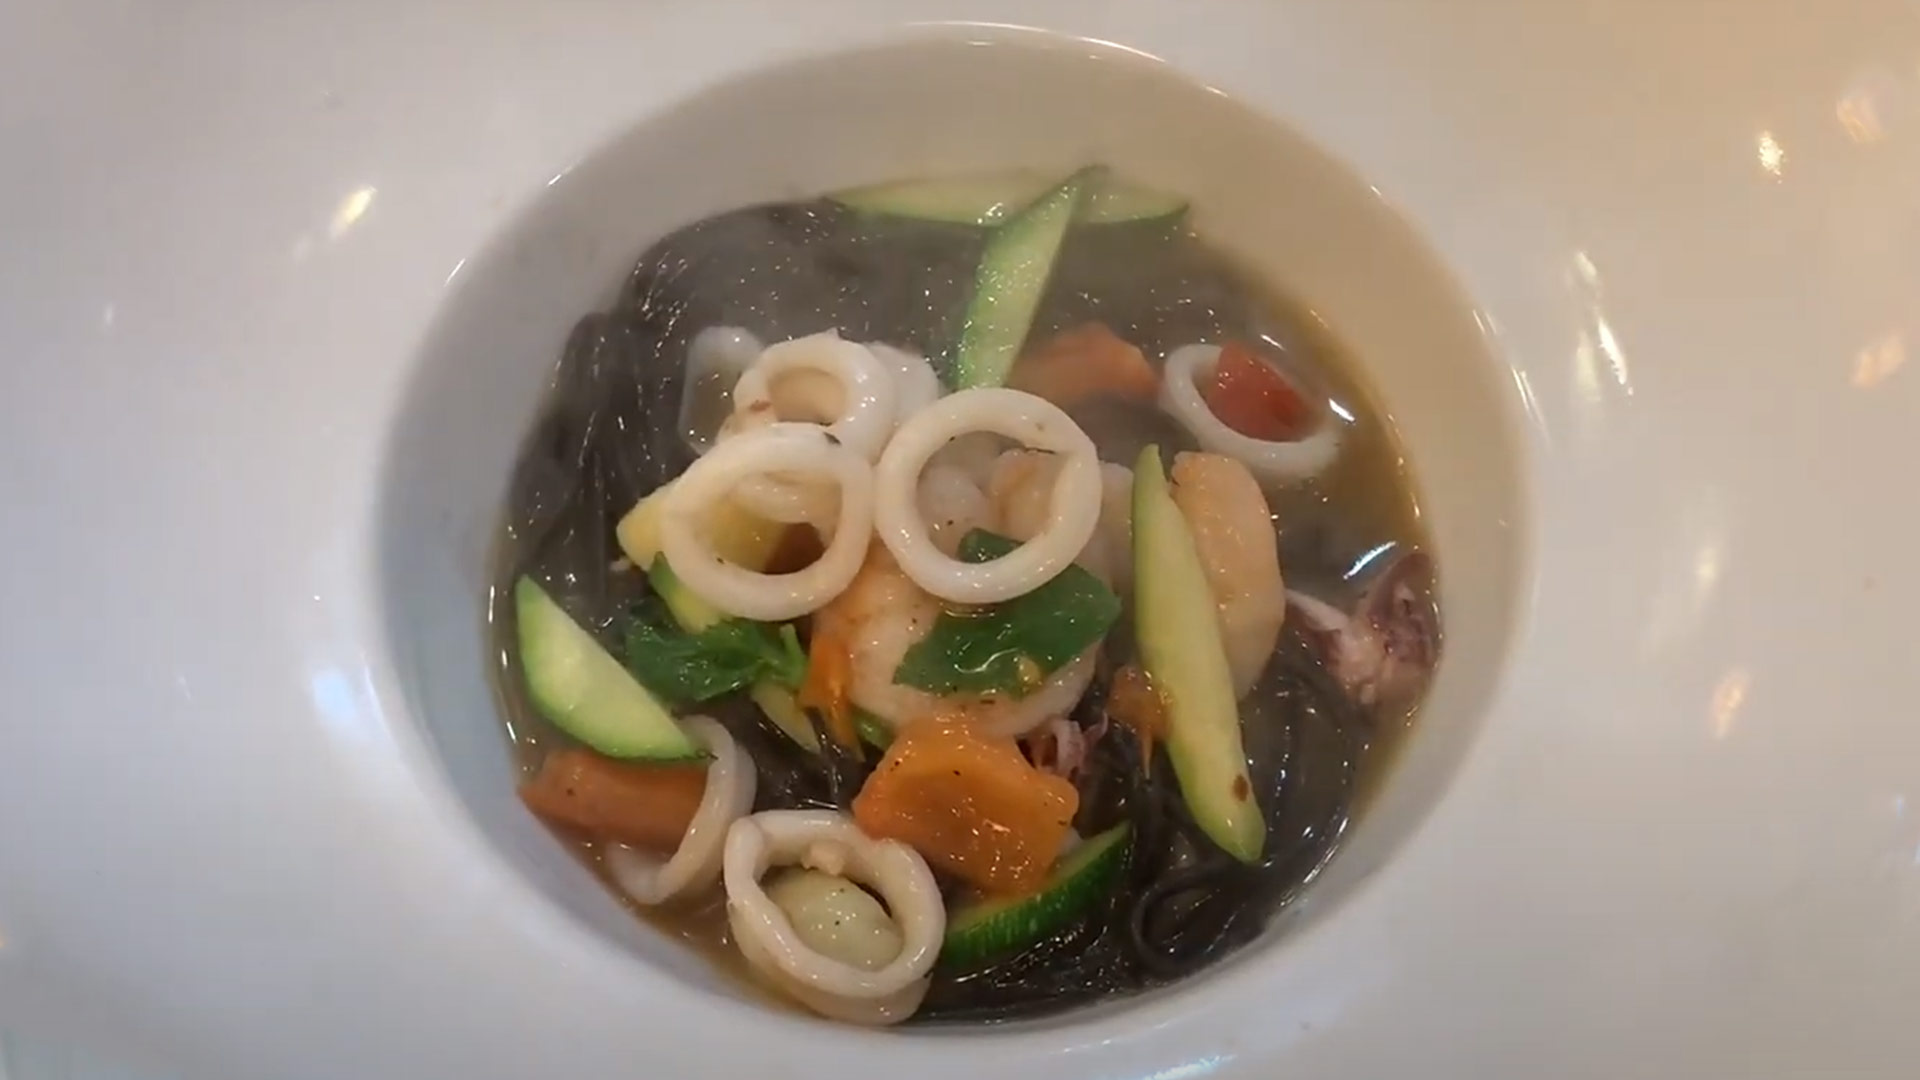 Black Squid ink Spaghetti with Seafood